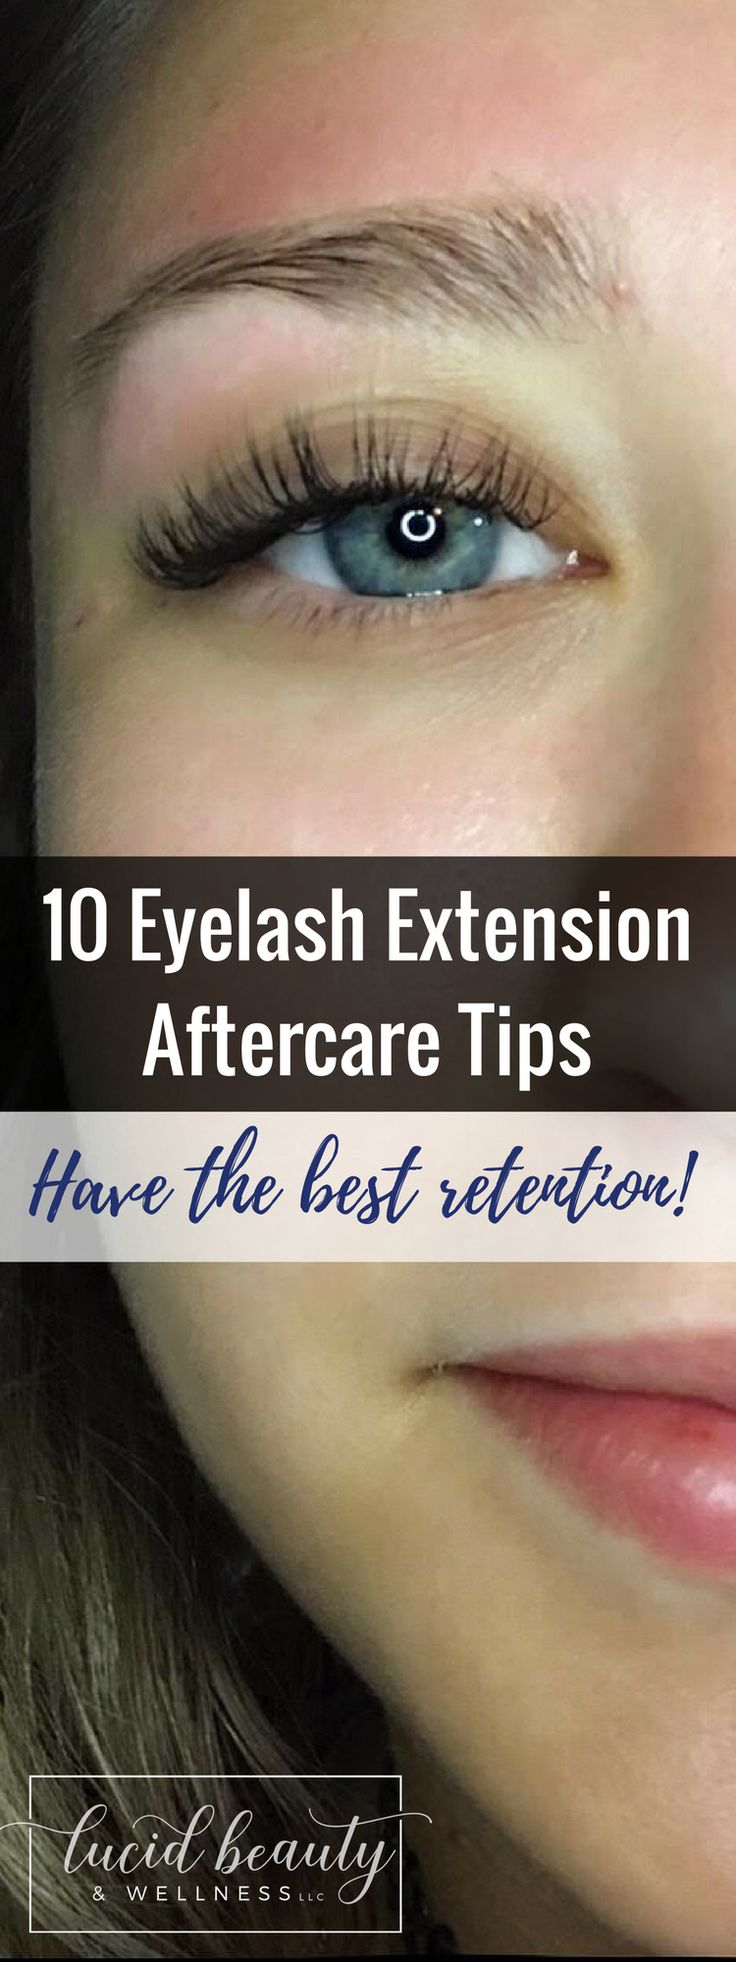 10 Eyelash Extension Aftercare Tips For the Best Retention! It's time for Ask a Lash Artist! By Molly Kearns of Lucid Beauty & Wellness, LLC in Catonsville, MD.